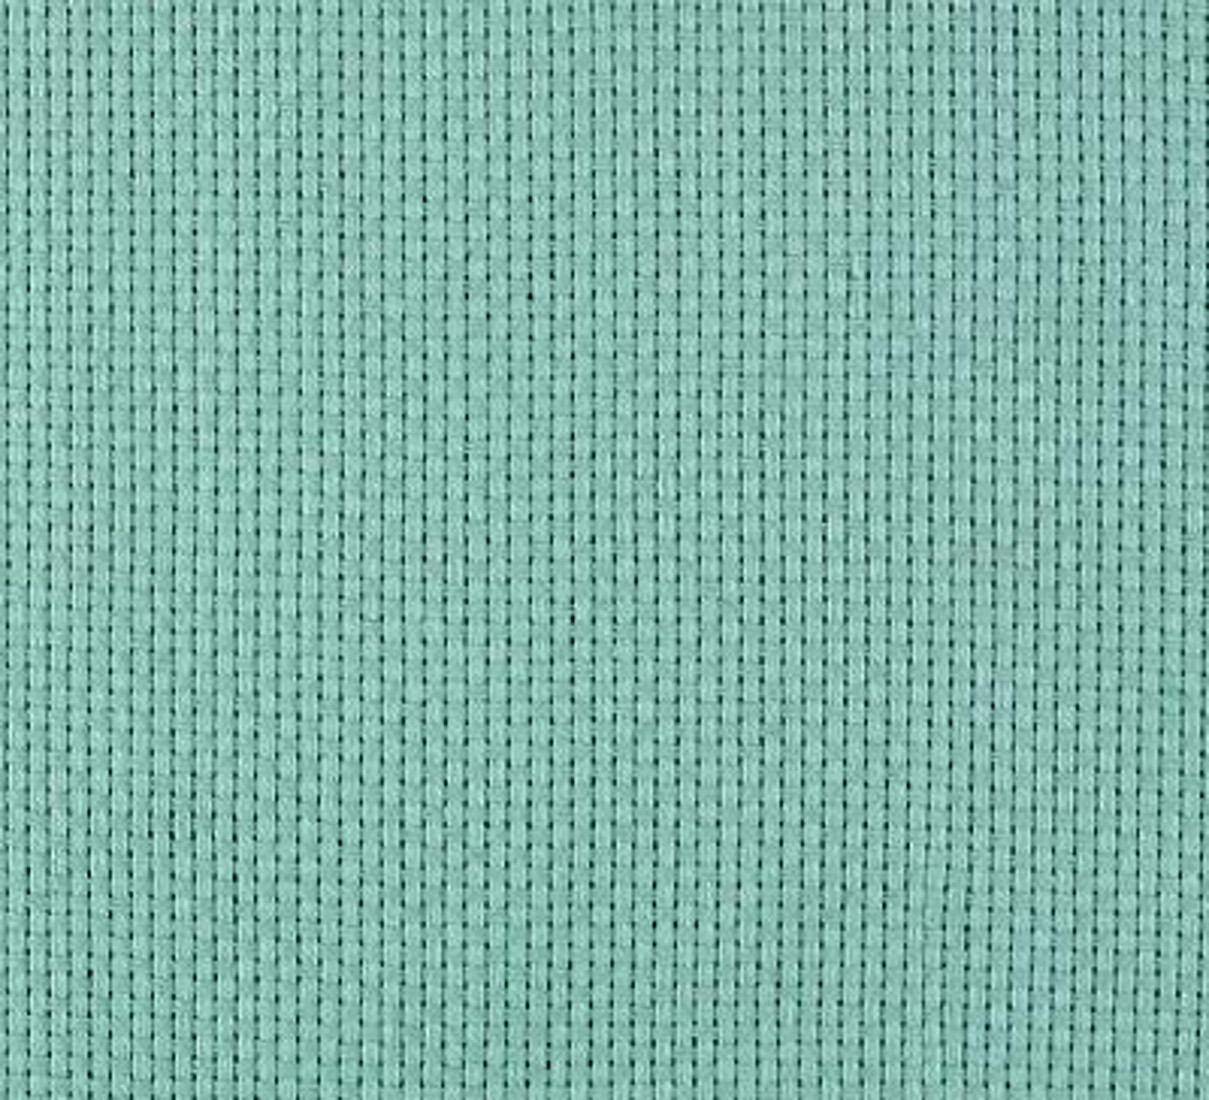 Monk's Cloth in Aqua Foam